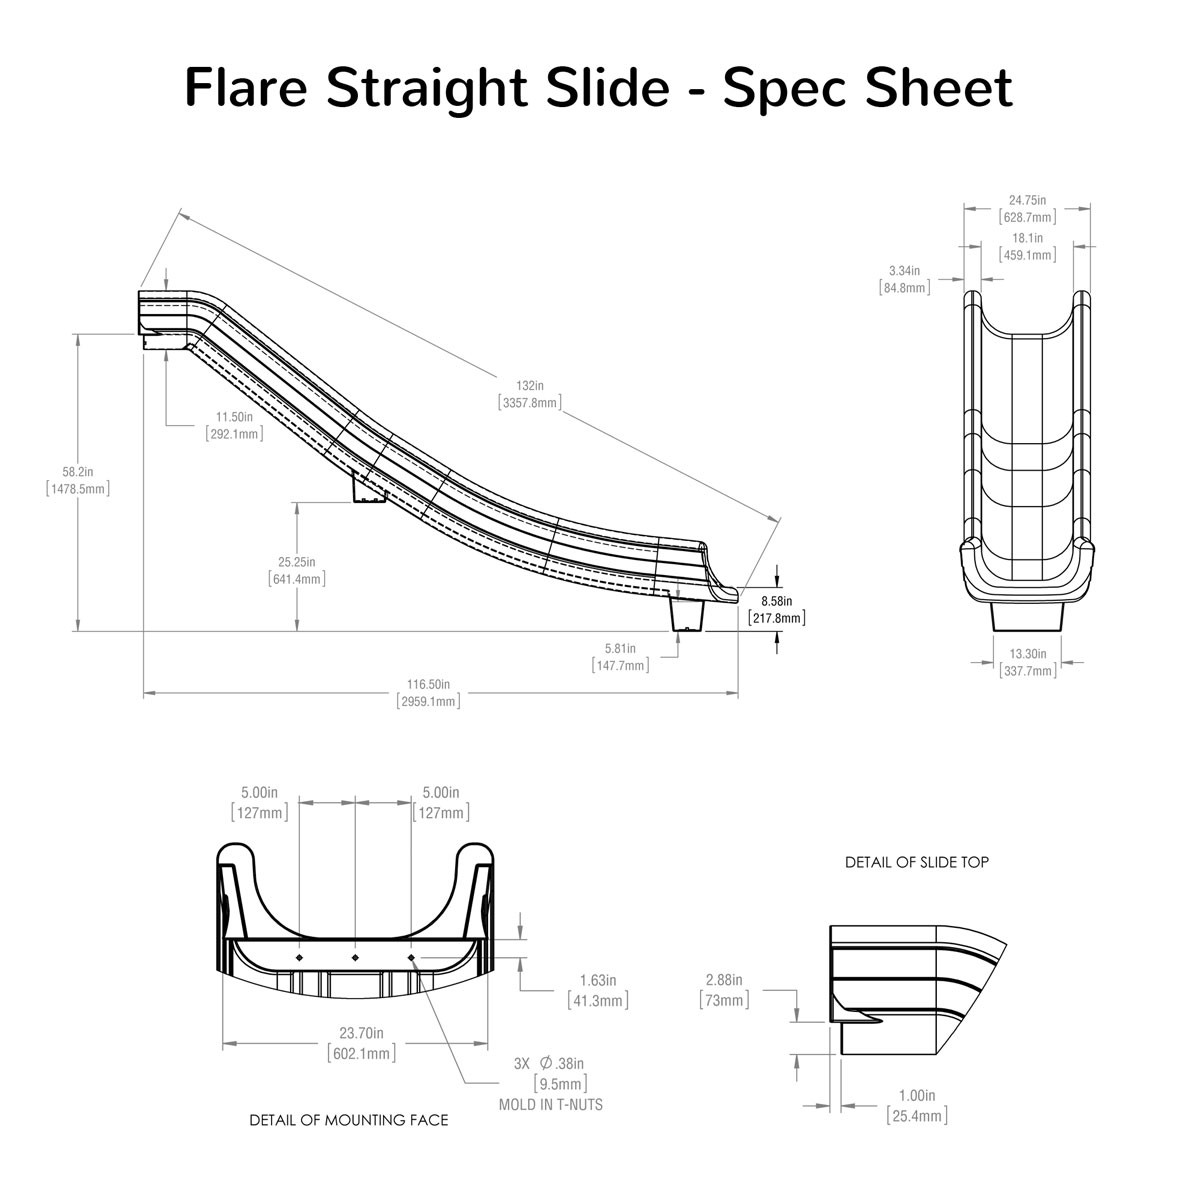 Flare Straight Slide Spec Sheet